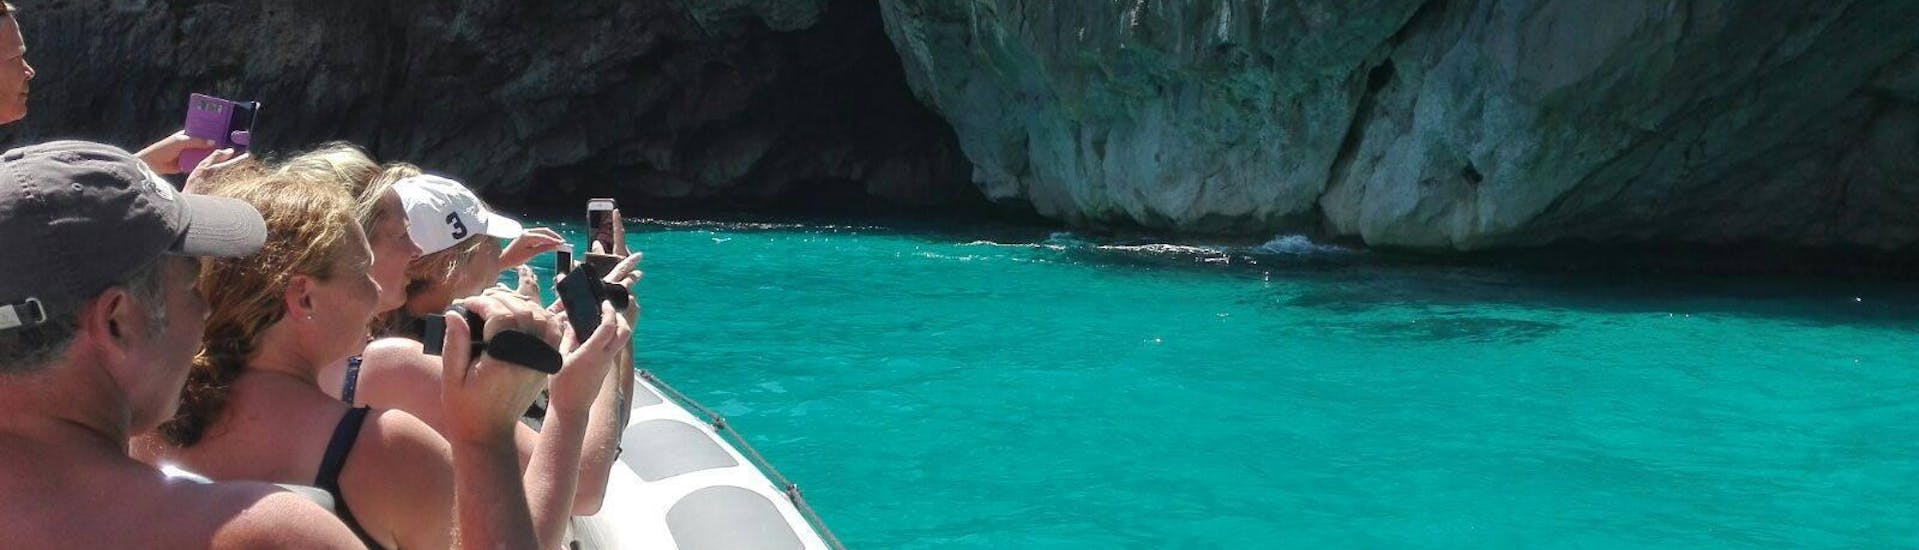 The tour participants enjoy the view of the crystal clear water and stone cliffs during the Boat Trip to Cabo Formentor with Dolphin Watching with Alcúdia Sea Explorer.